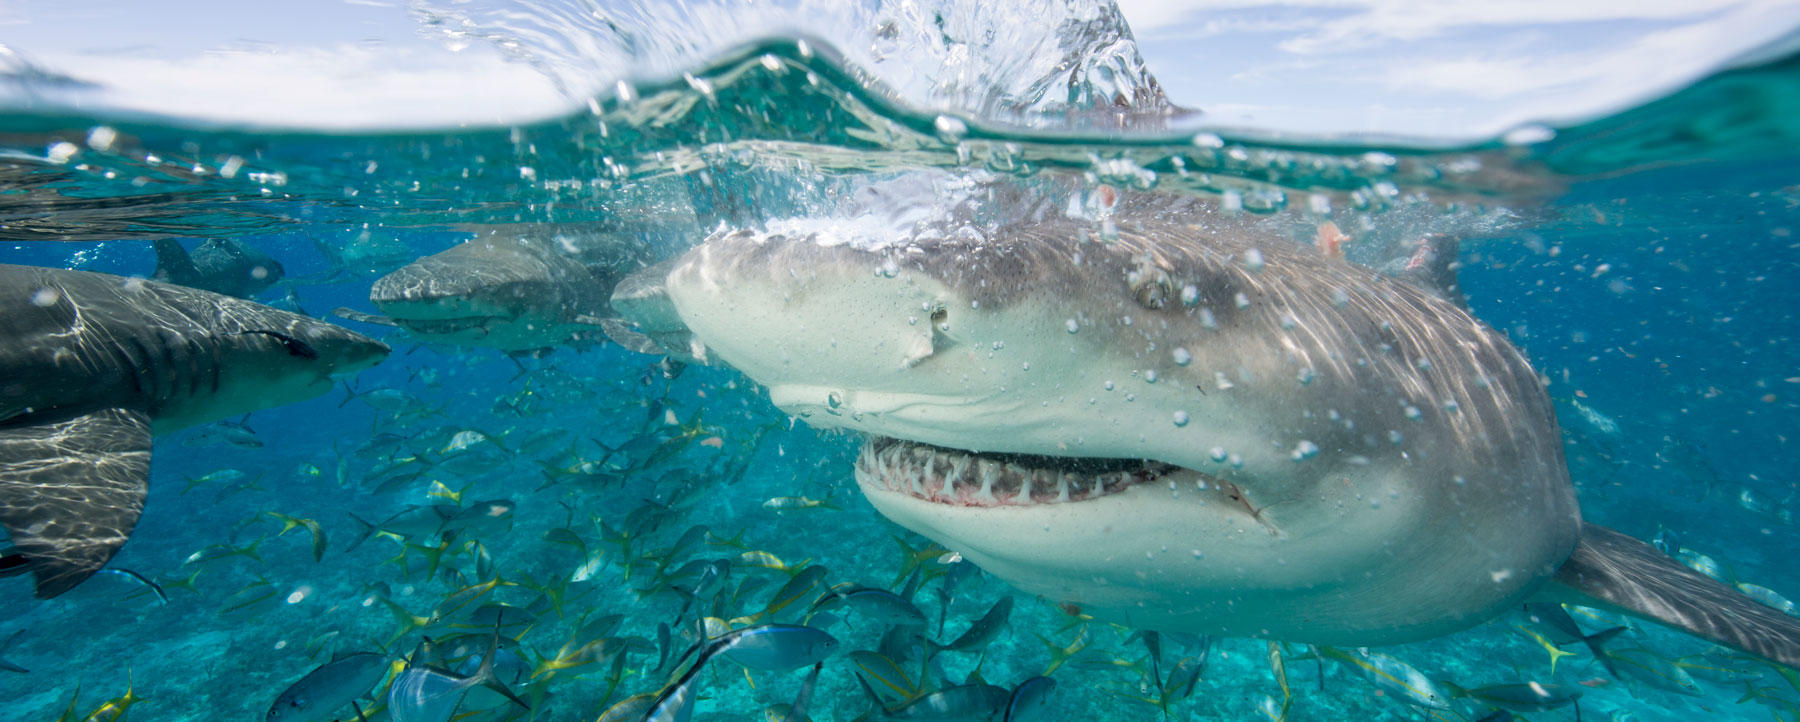 Lemon sharks compete for food during a staged shark feeding dive in the Bahamas